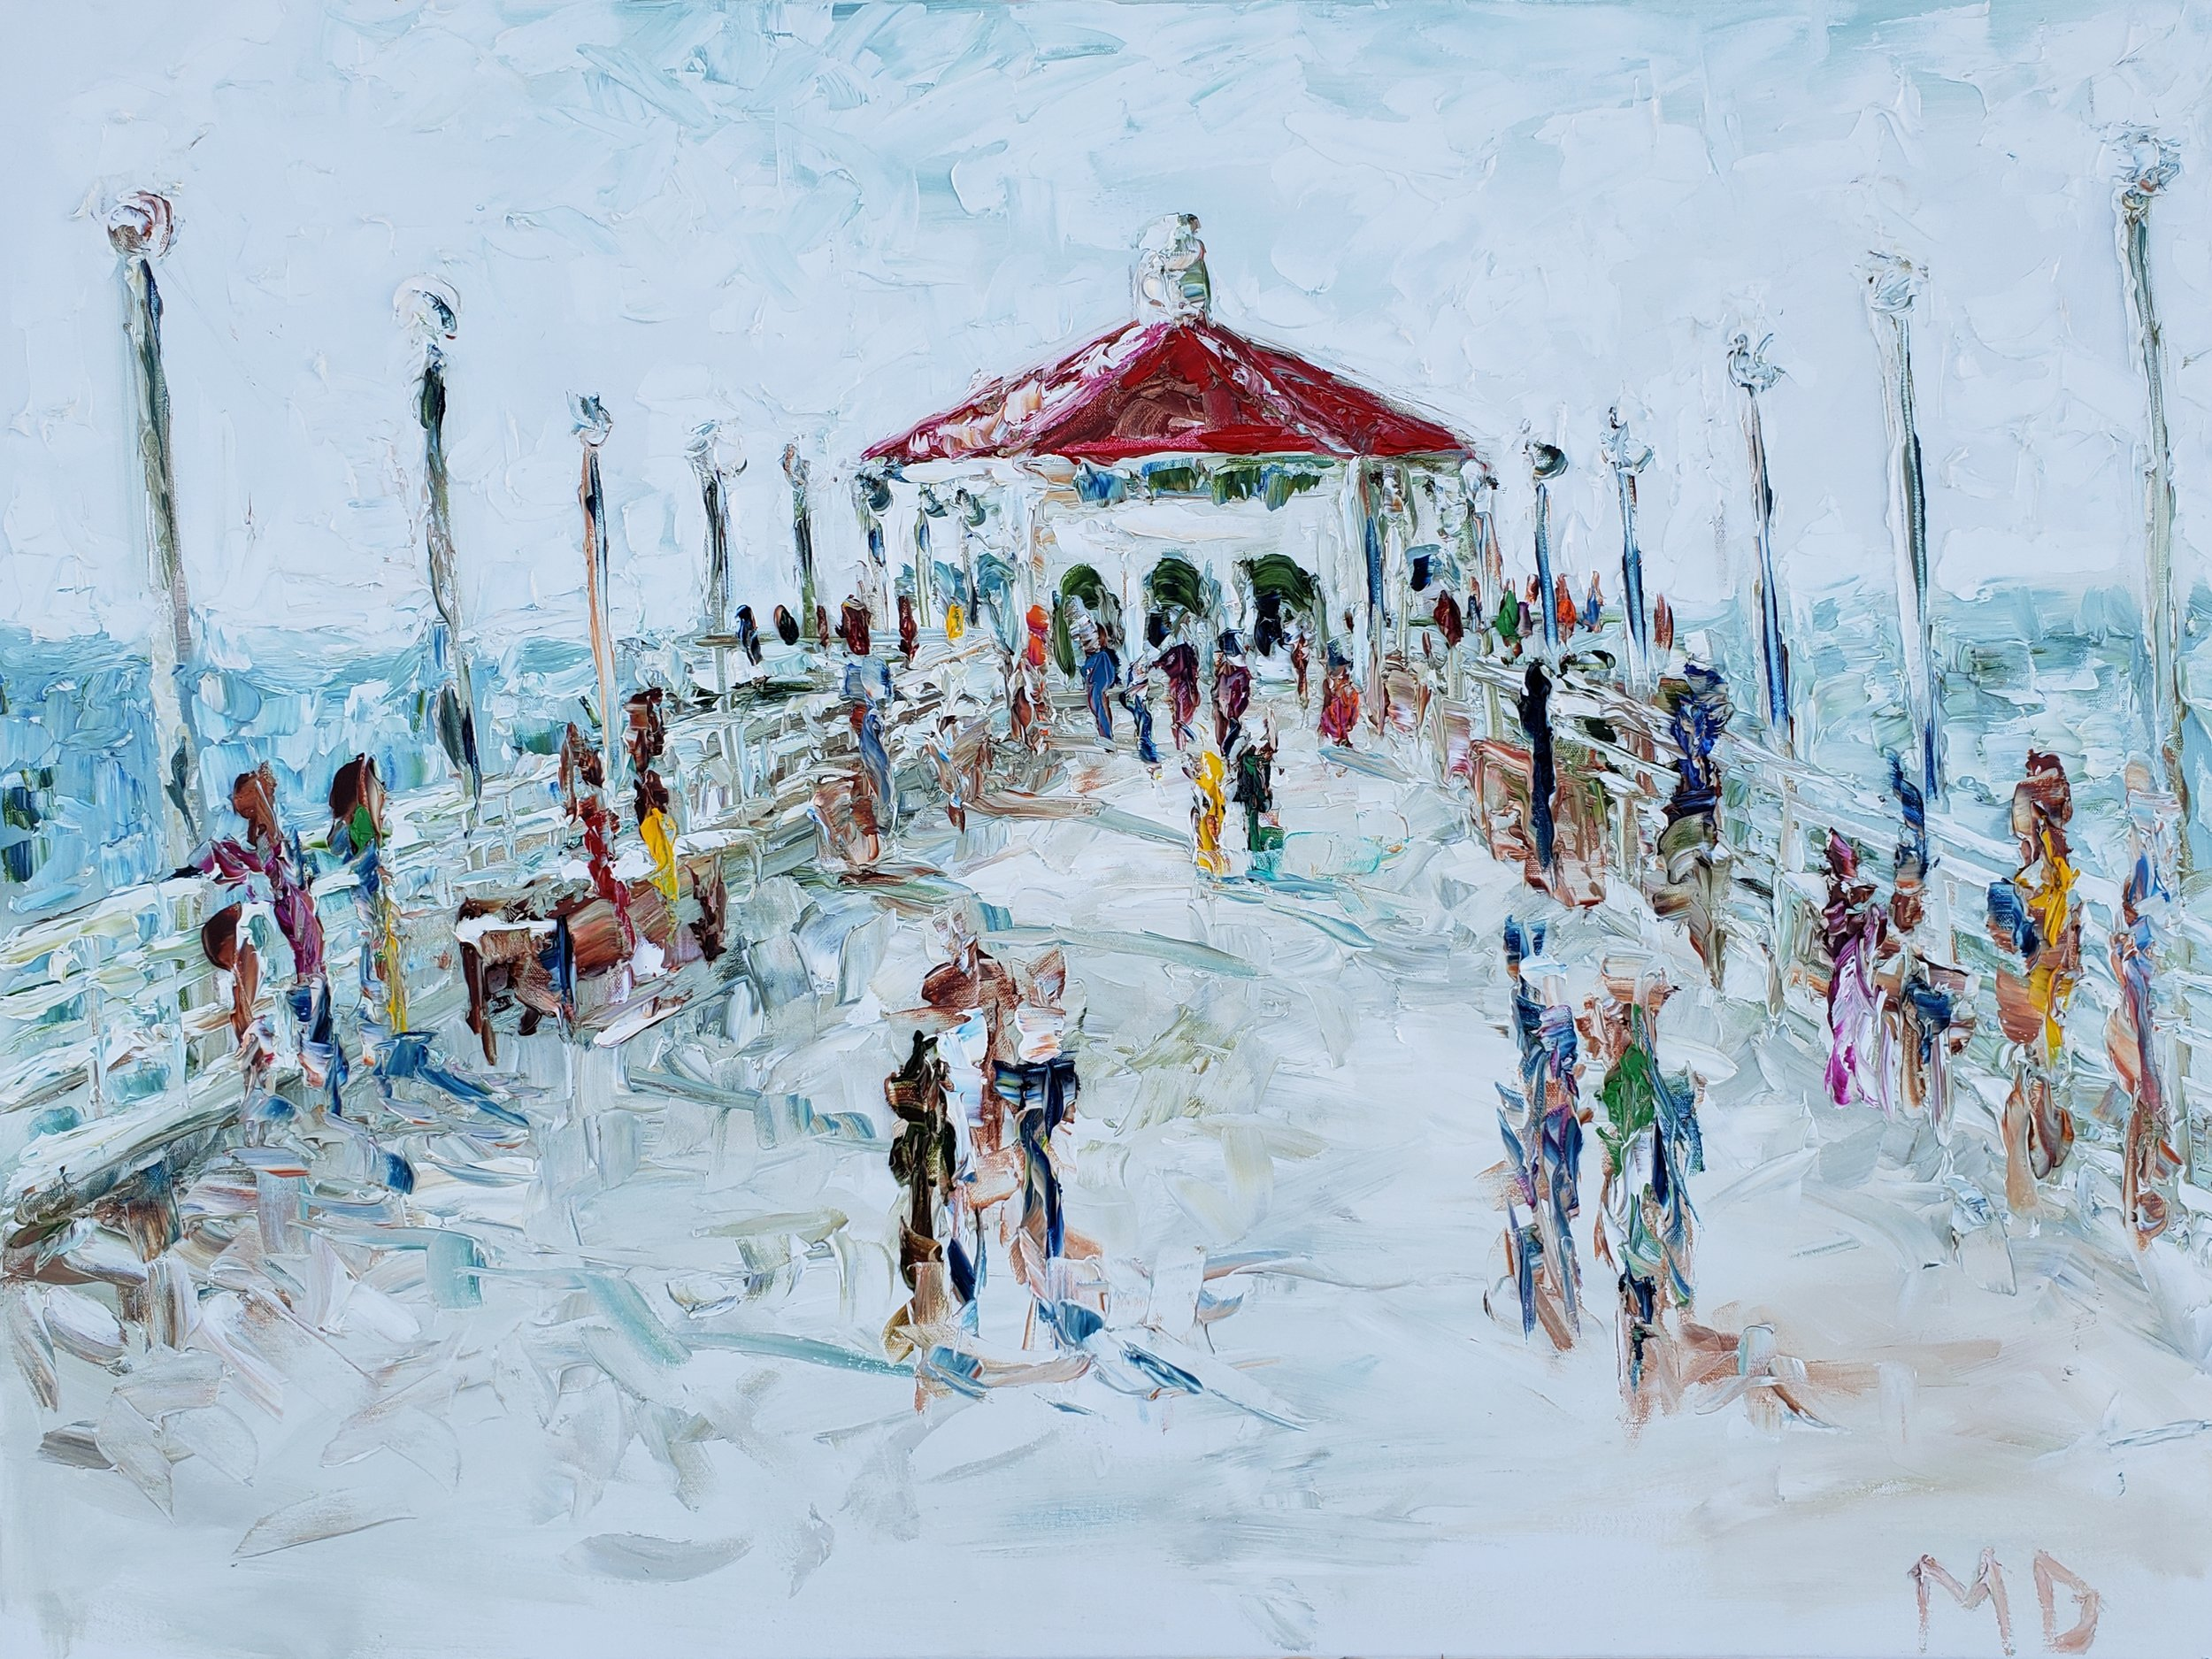 Hometown Pier | 40x30 | Oil on canvas | $1,200.00 | SOLD